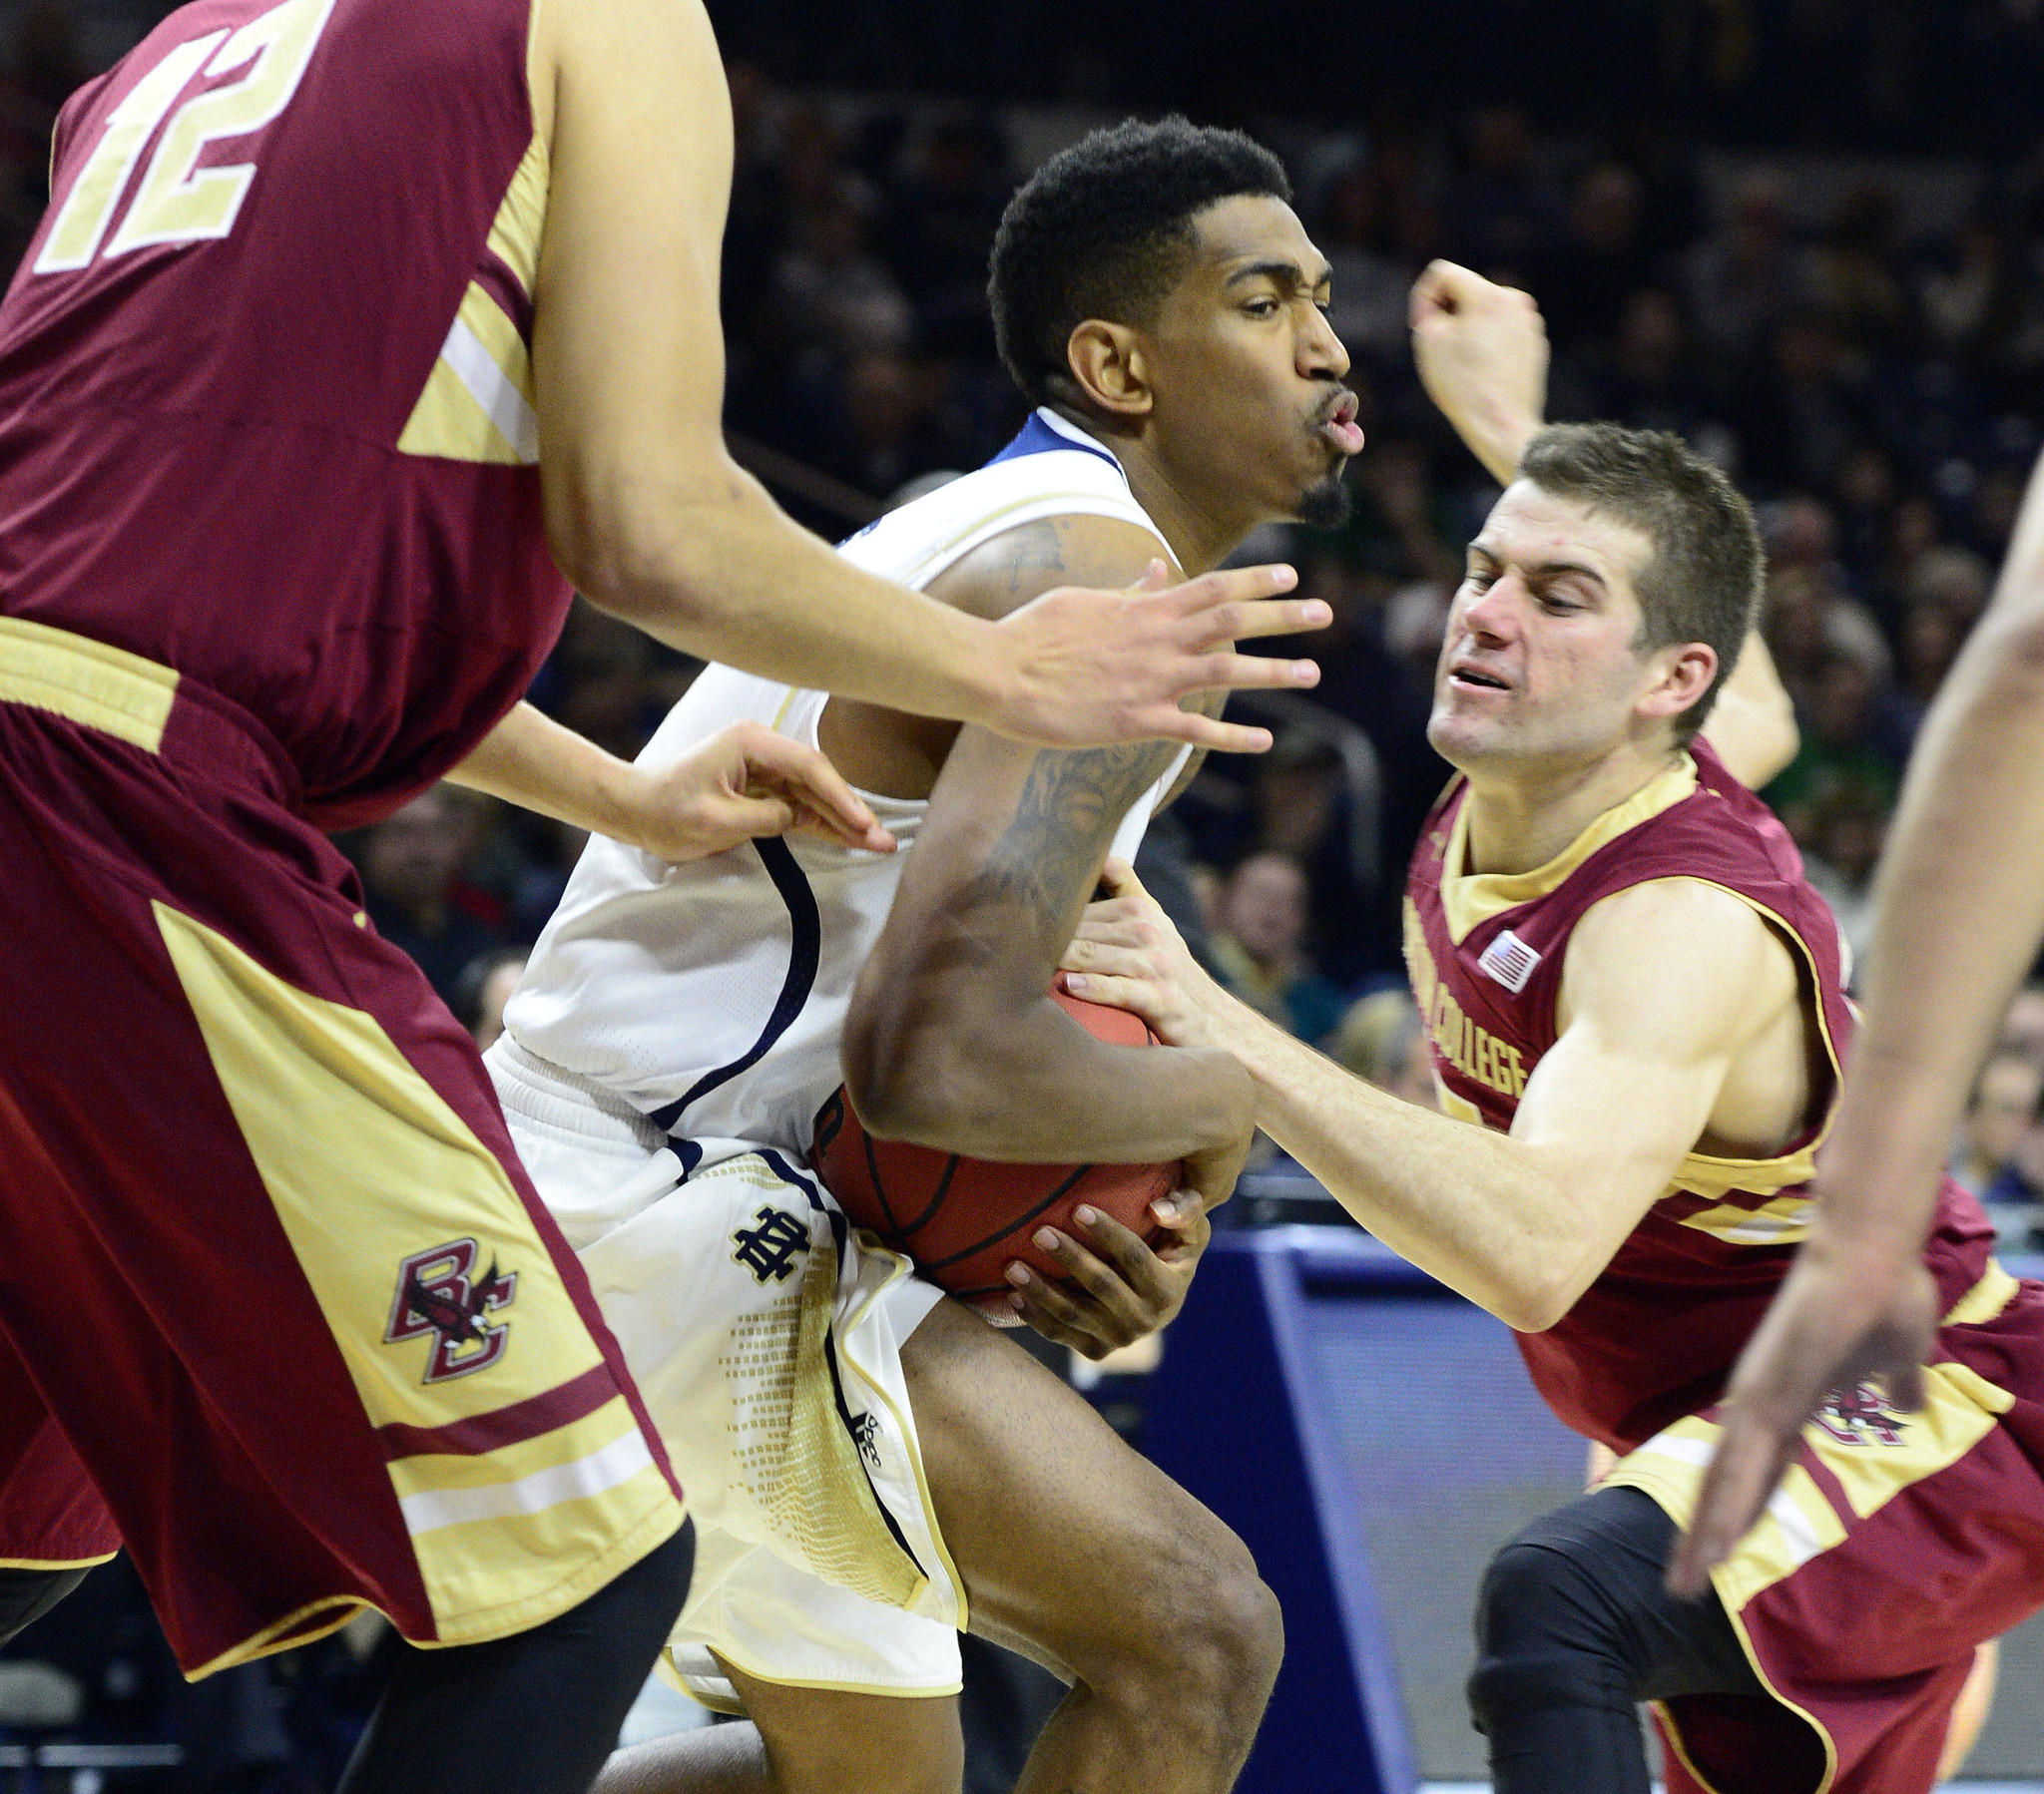 Notre Dame guard Eric Atkins (0) attempts to keep the ball away from Boston College guard Joe Rahon.